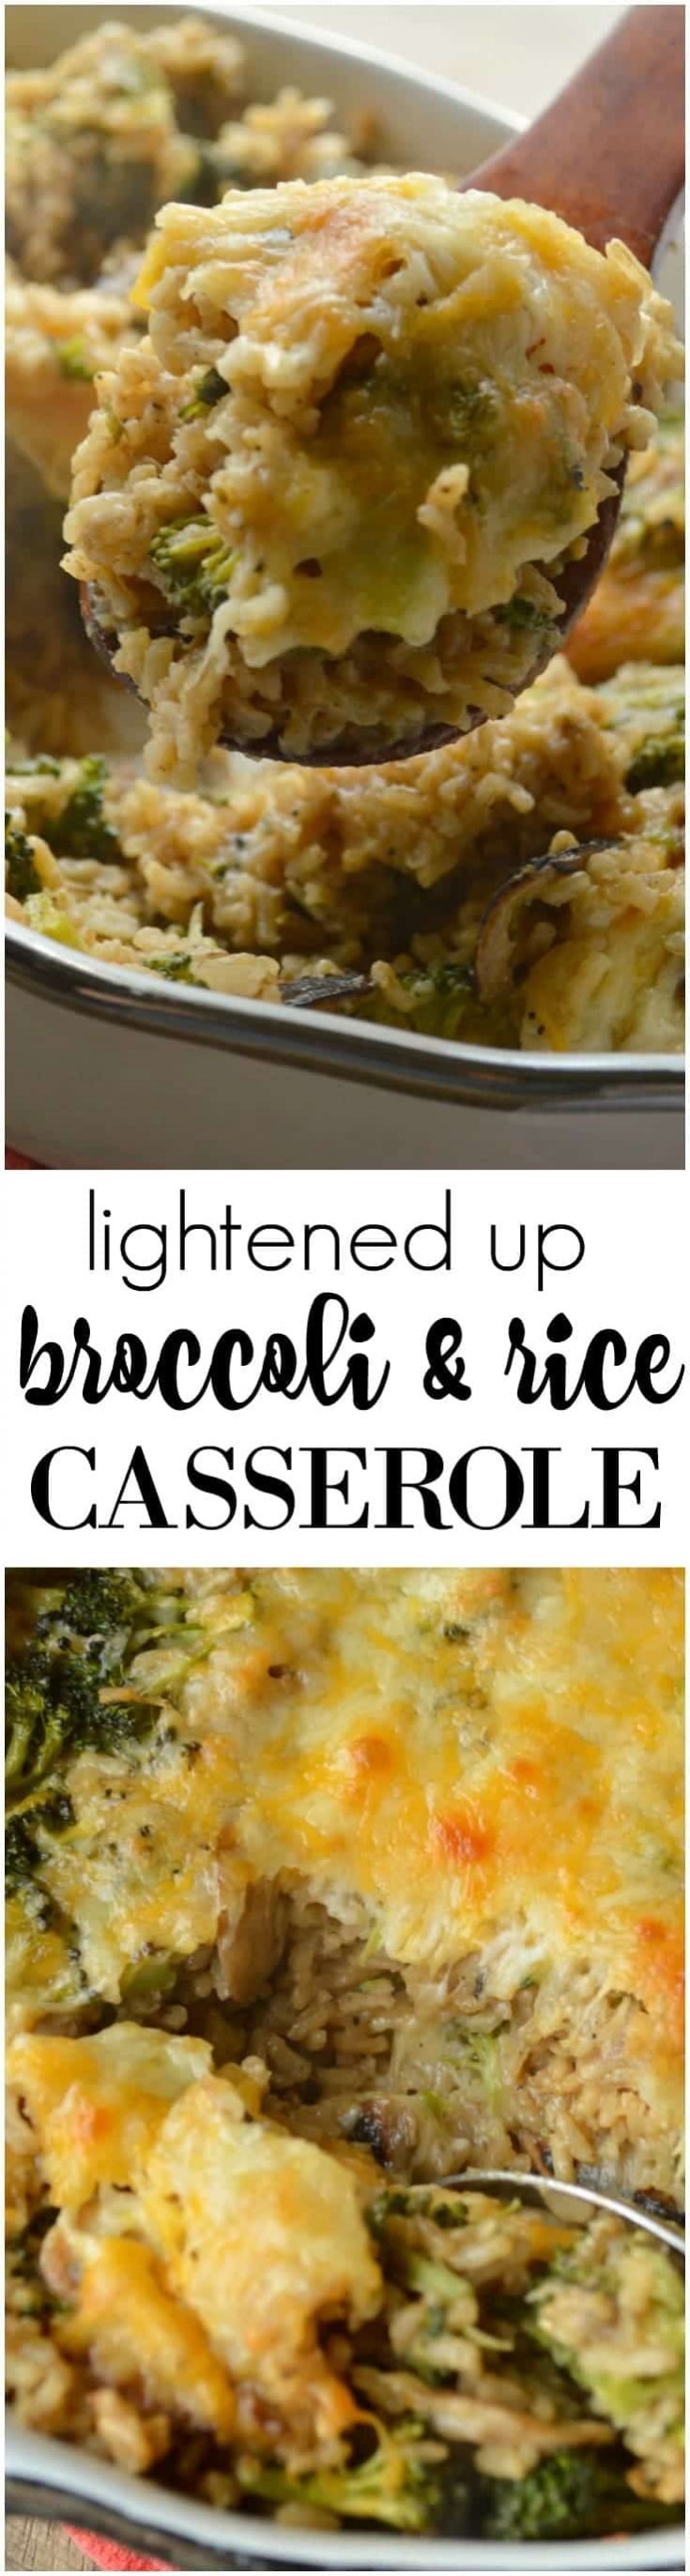 Lightened Up Broccoli Rice Casserole is made with fresh broccoli and homemade cream of mushroom soup. SO GOOD!